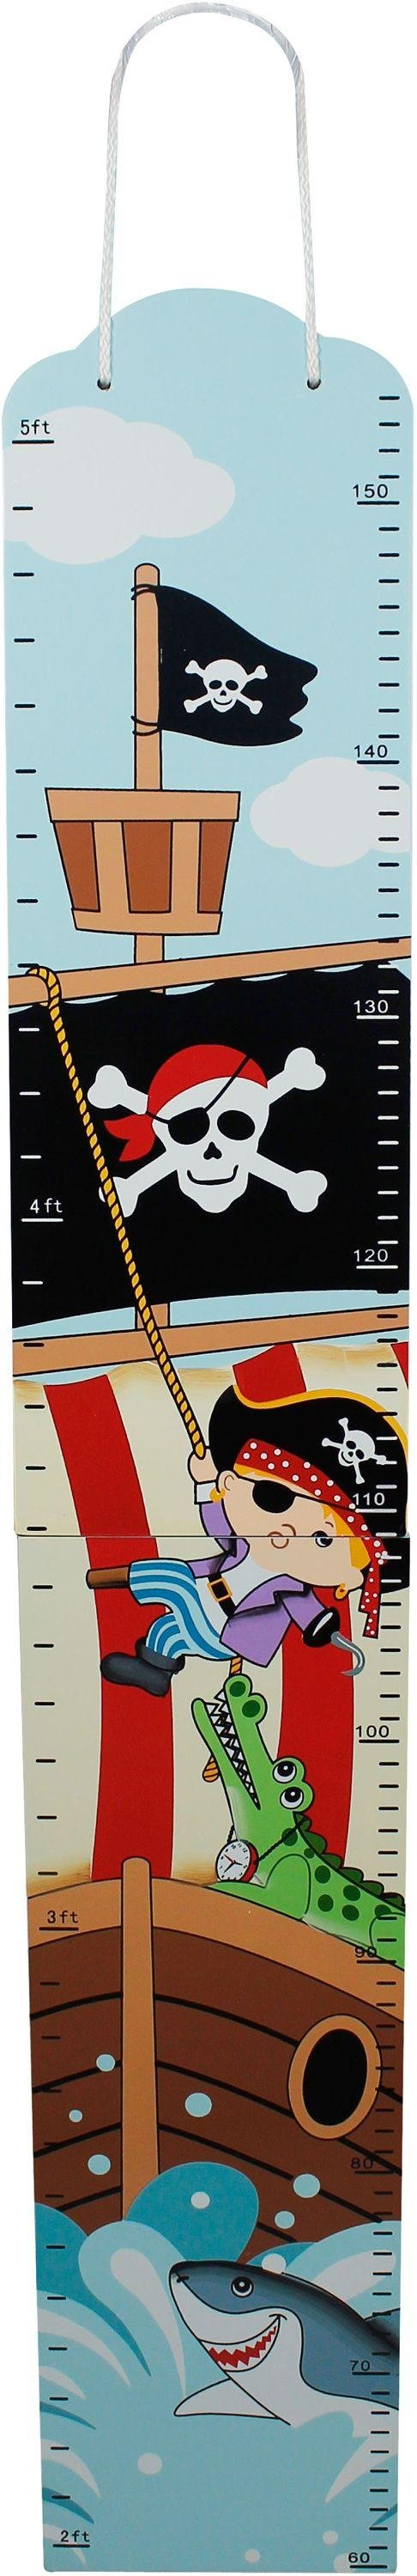 Image of Fantasy Fields Pirate Growth Chart.